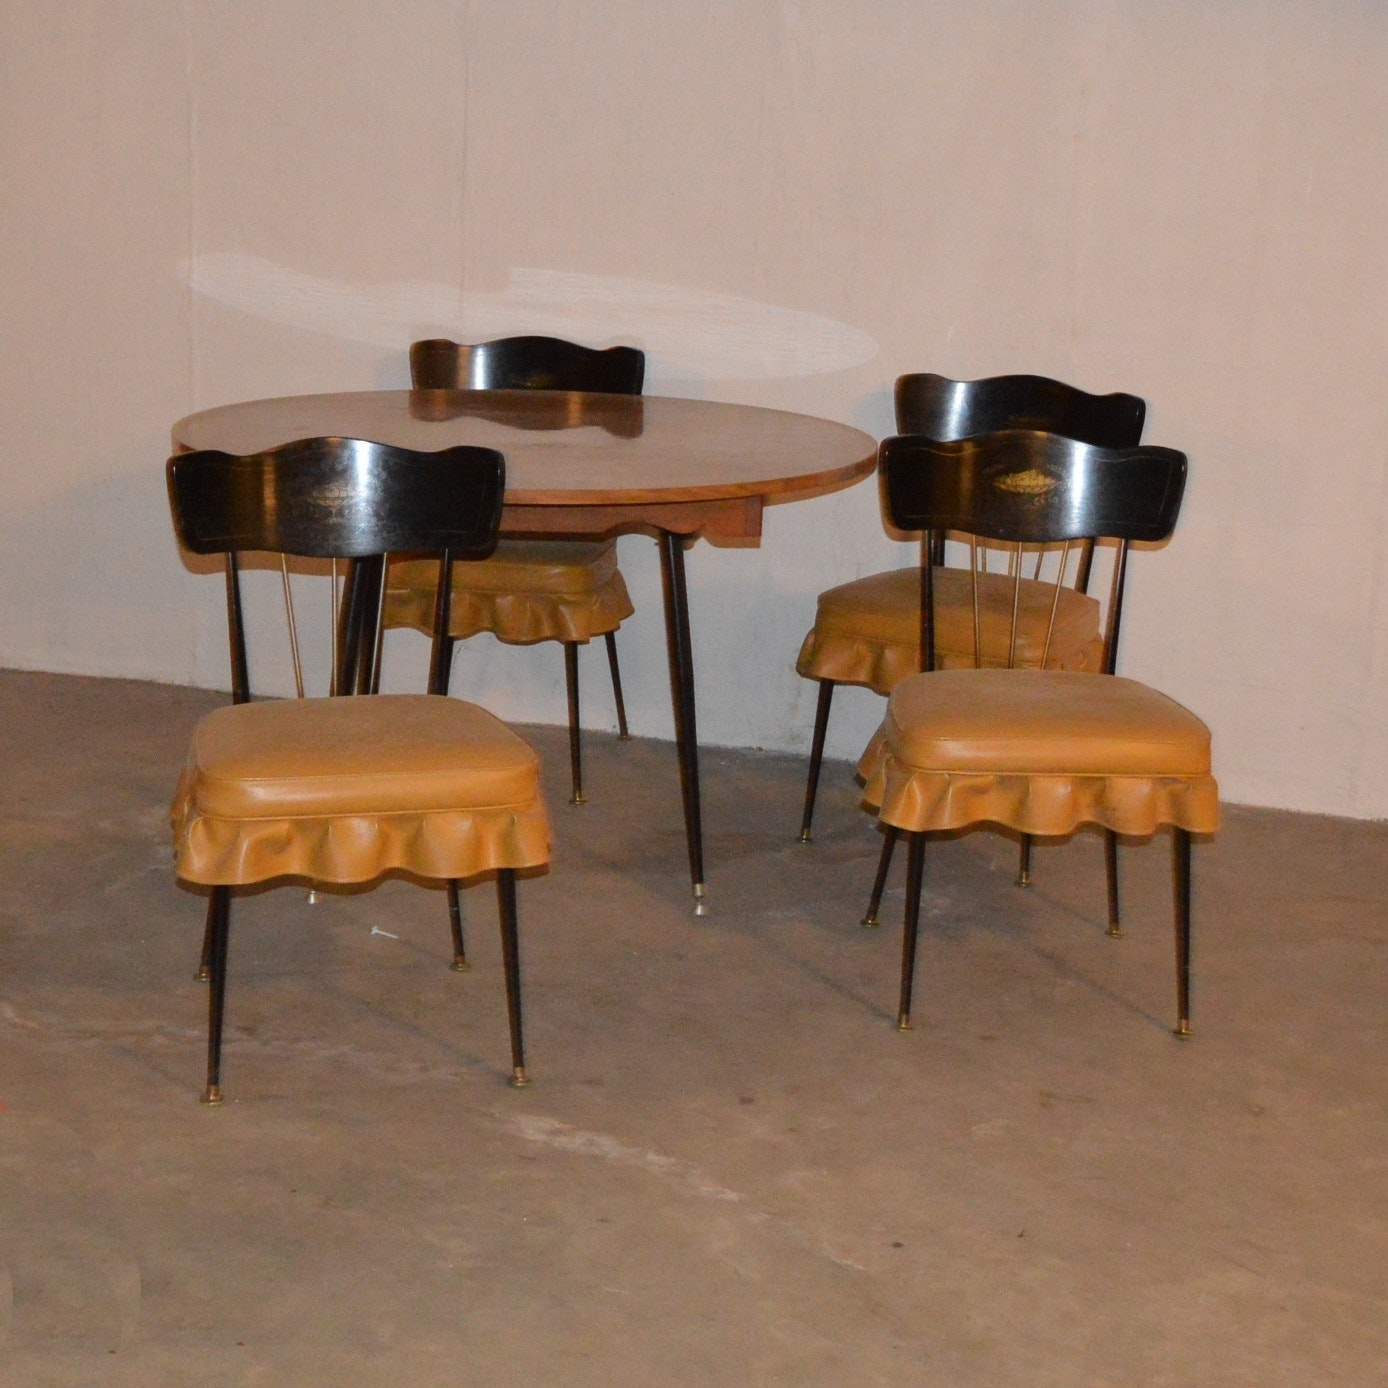 Vintage Kitchen Table and Four Chairs